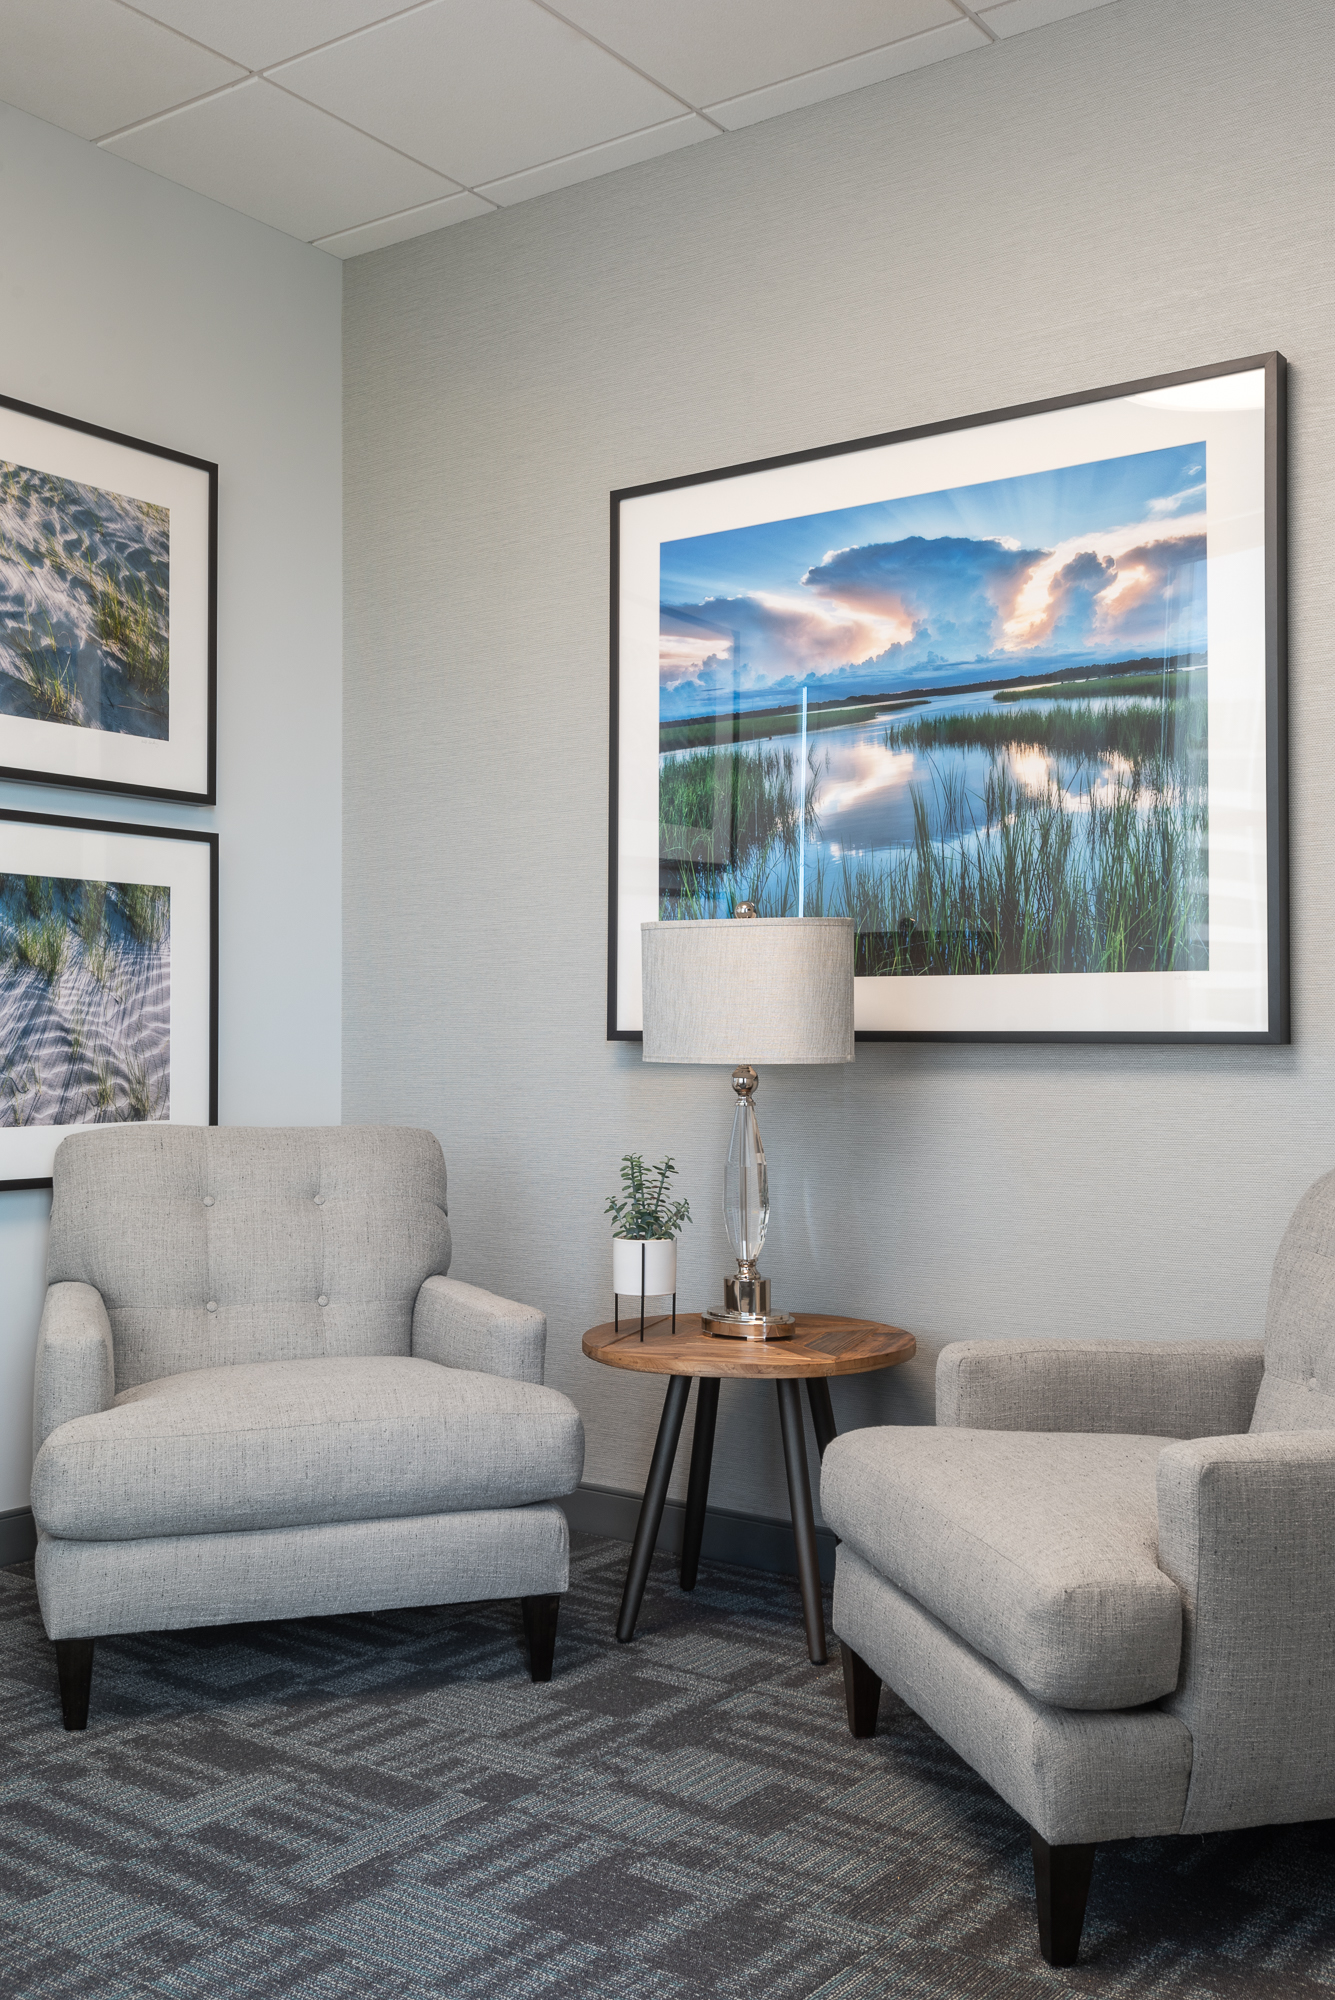 Micamy Design Studio_Interior Design_Pediatric Eye Consultants_North Florida_Riverside_Ophthalmology_Strabismus_Office_Medical_Eye Care_Renovation_Patcraft_Mothers Room_Waiting_Lounge.jpg